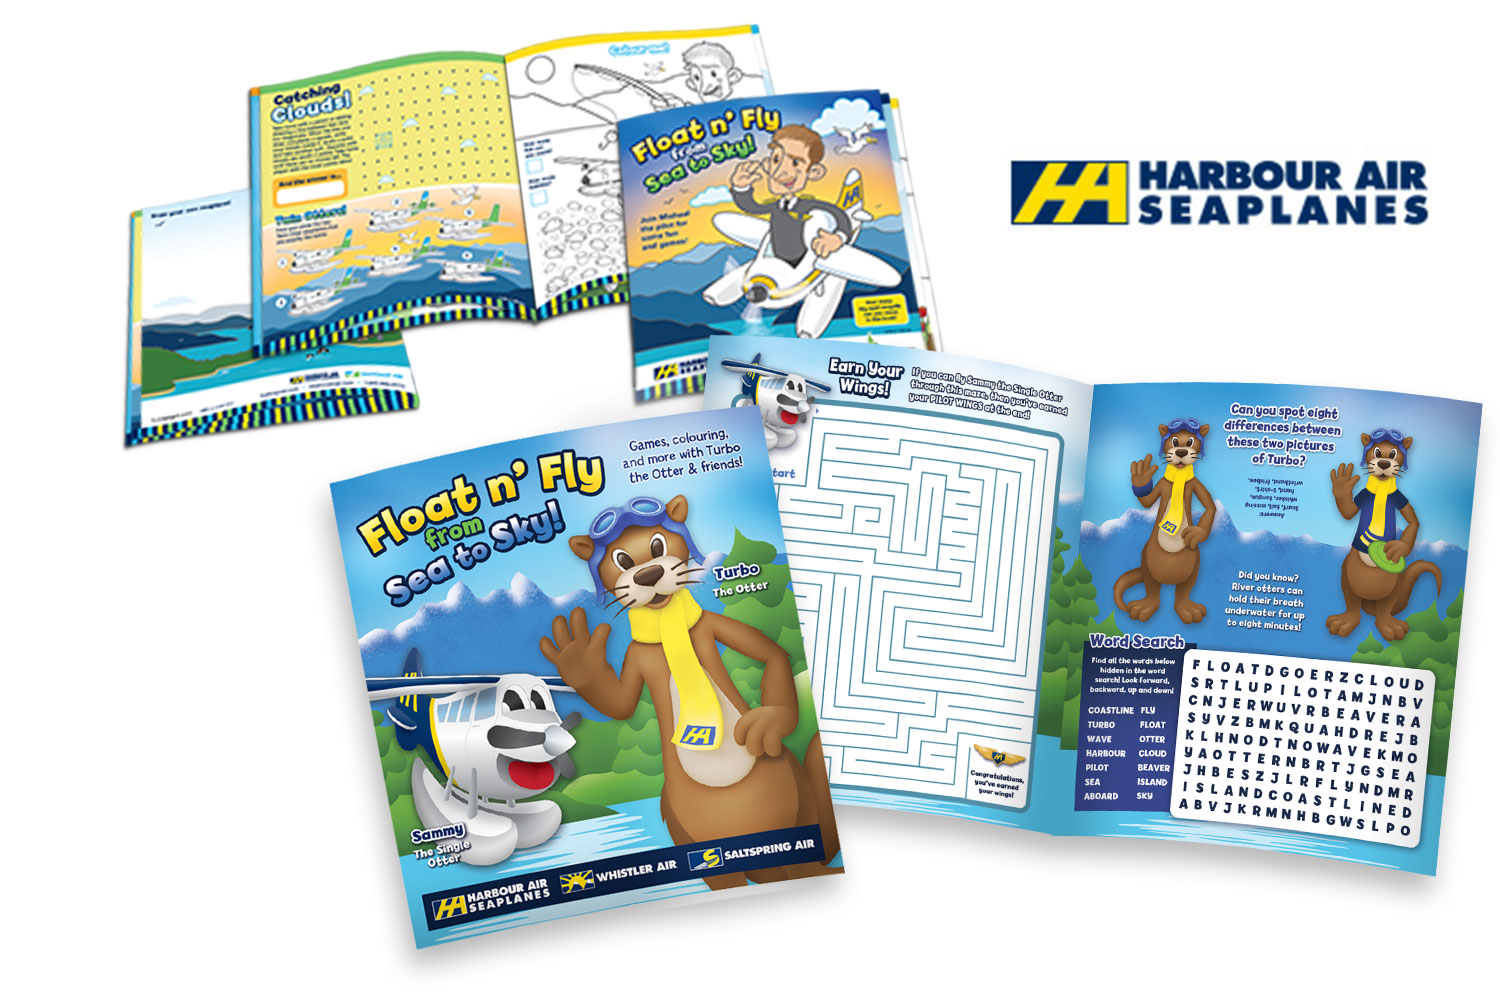 Top: Harbour Air's activity book from 2011. Bottom: Refreshed 2016 activity book featuring new mascots: Turbo and Sammy.